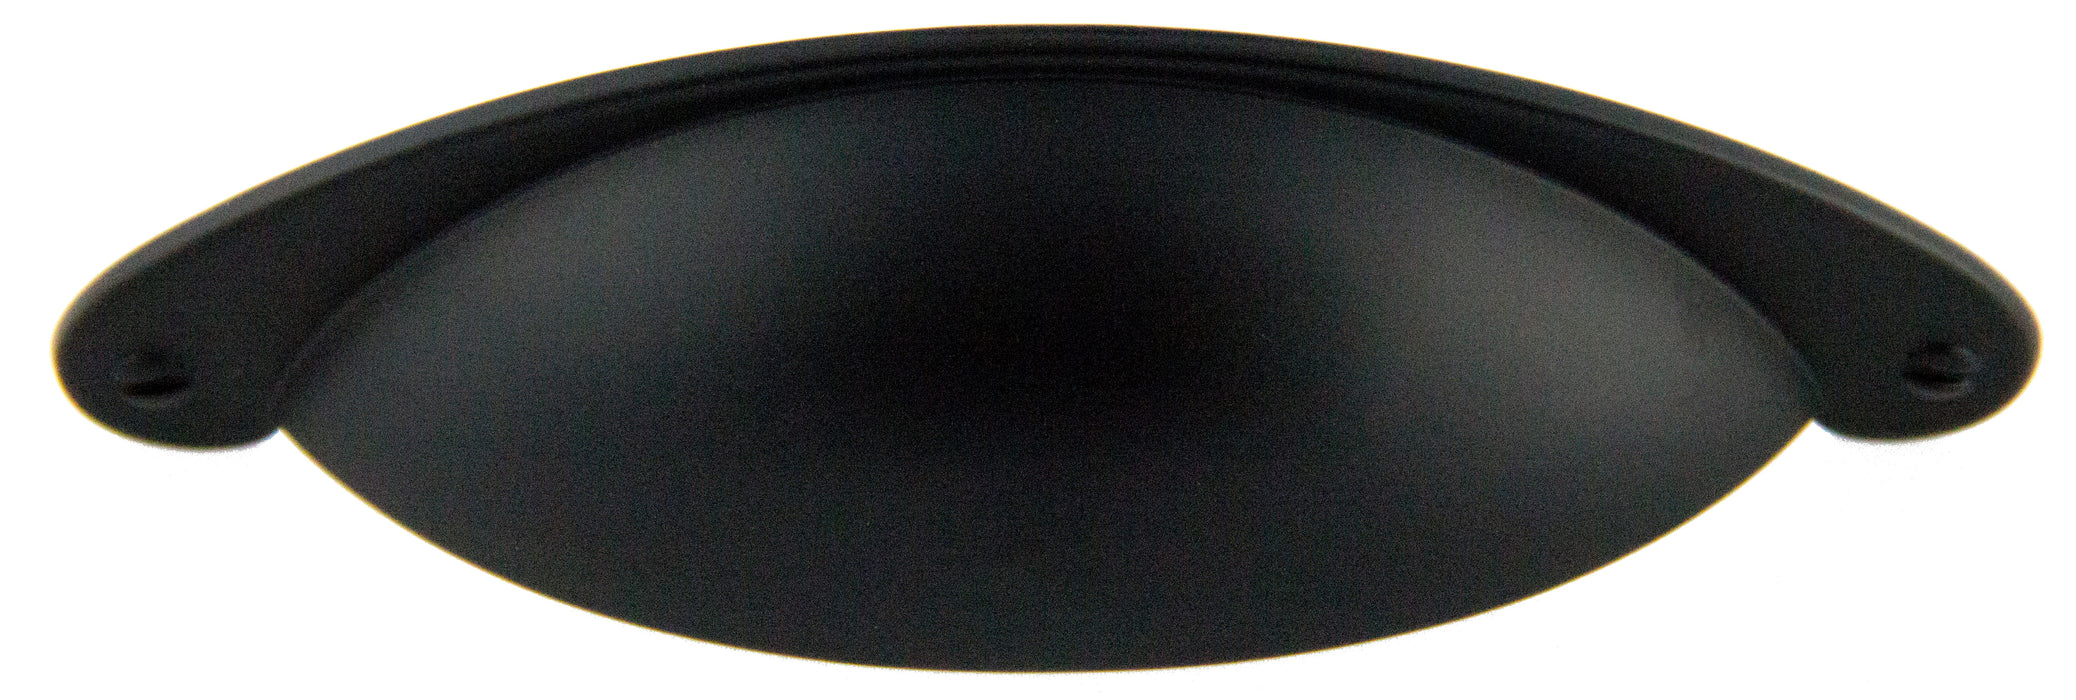 "Andrew Claire Collection 3"" Hooded Cup Pull Matte Black (AC-8233.BK)"